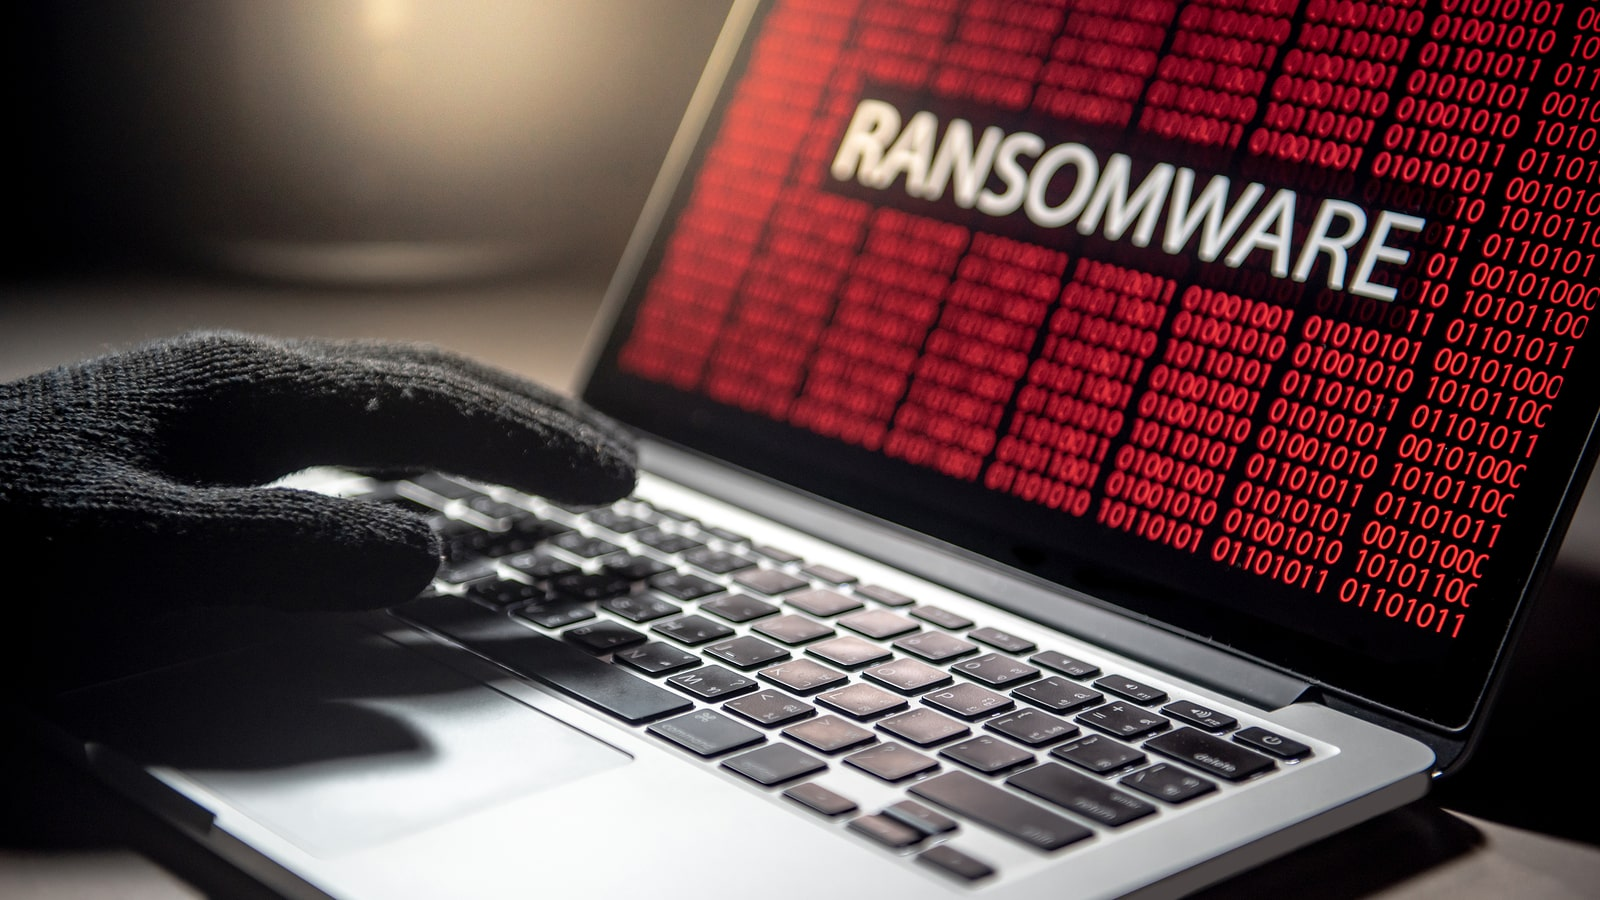 L'attaque par Ransomware de WannaCry a coûté plus de 100 millions de dollars au National Health Service (NHS)